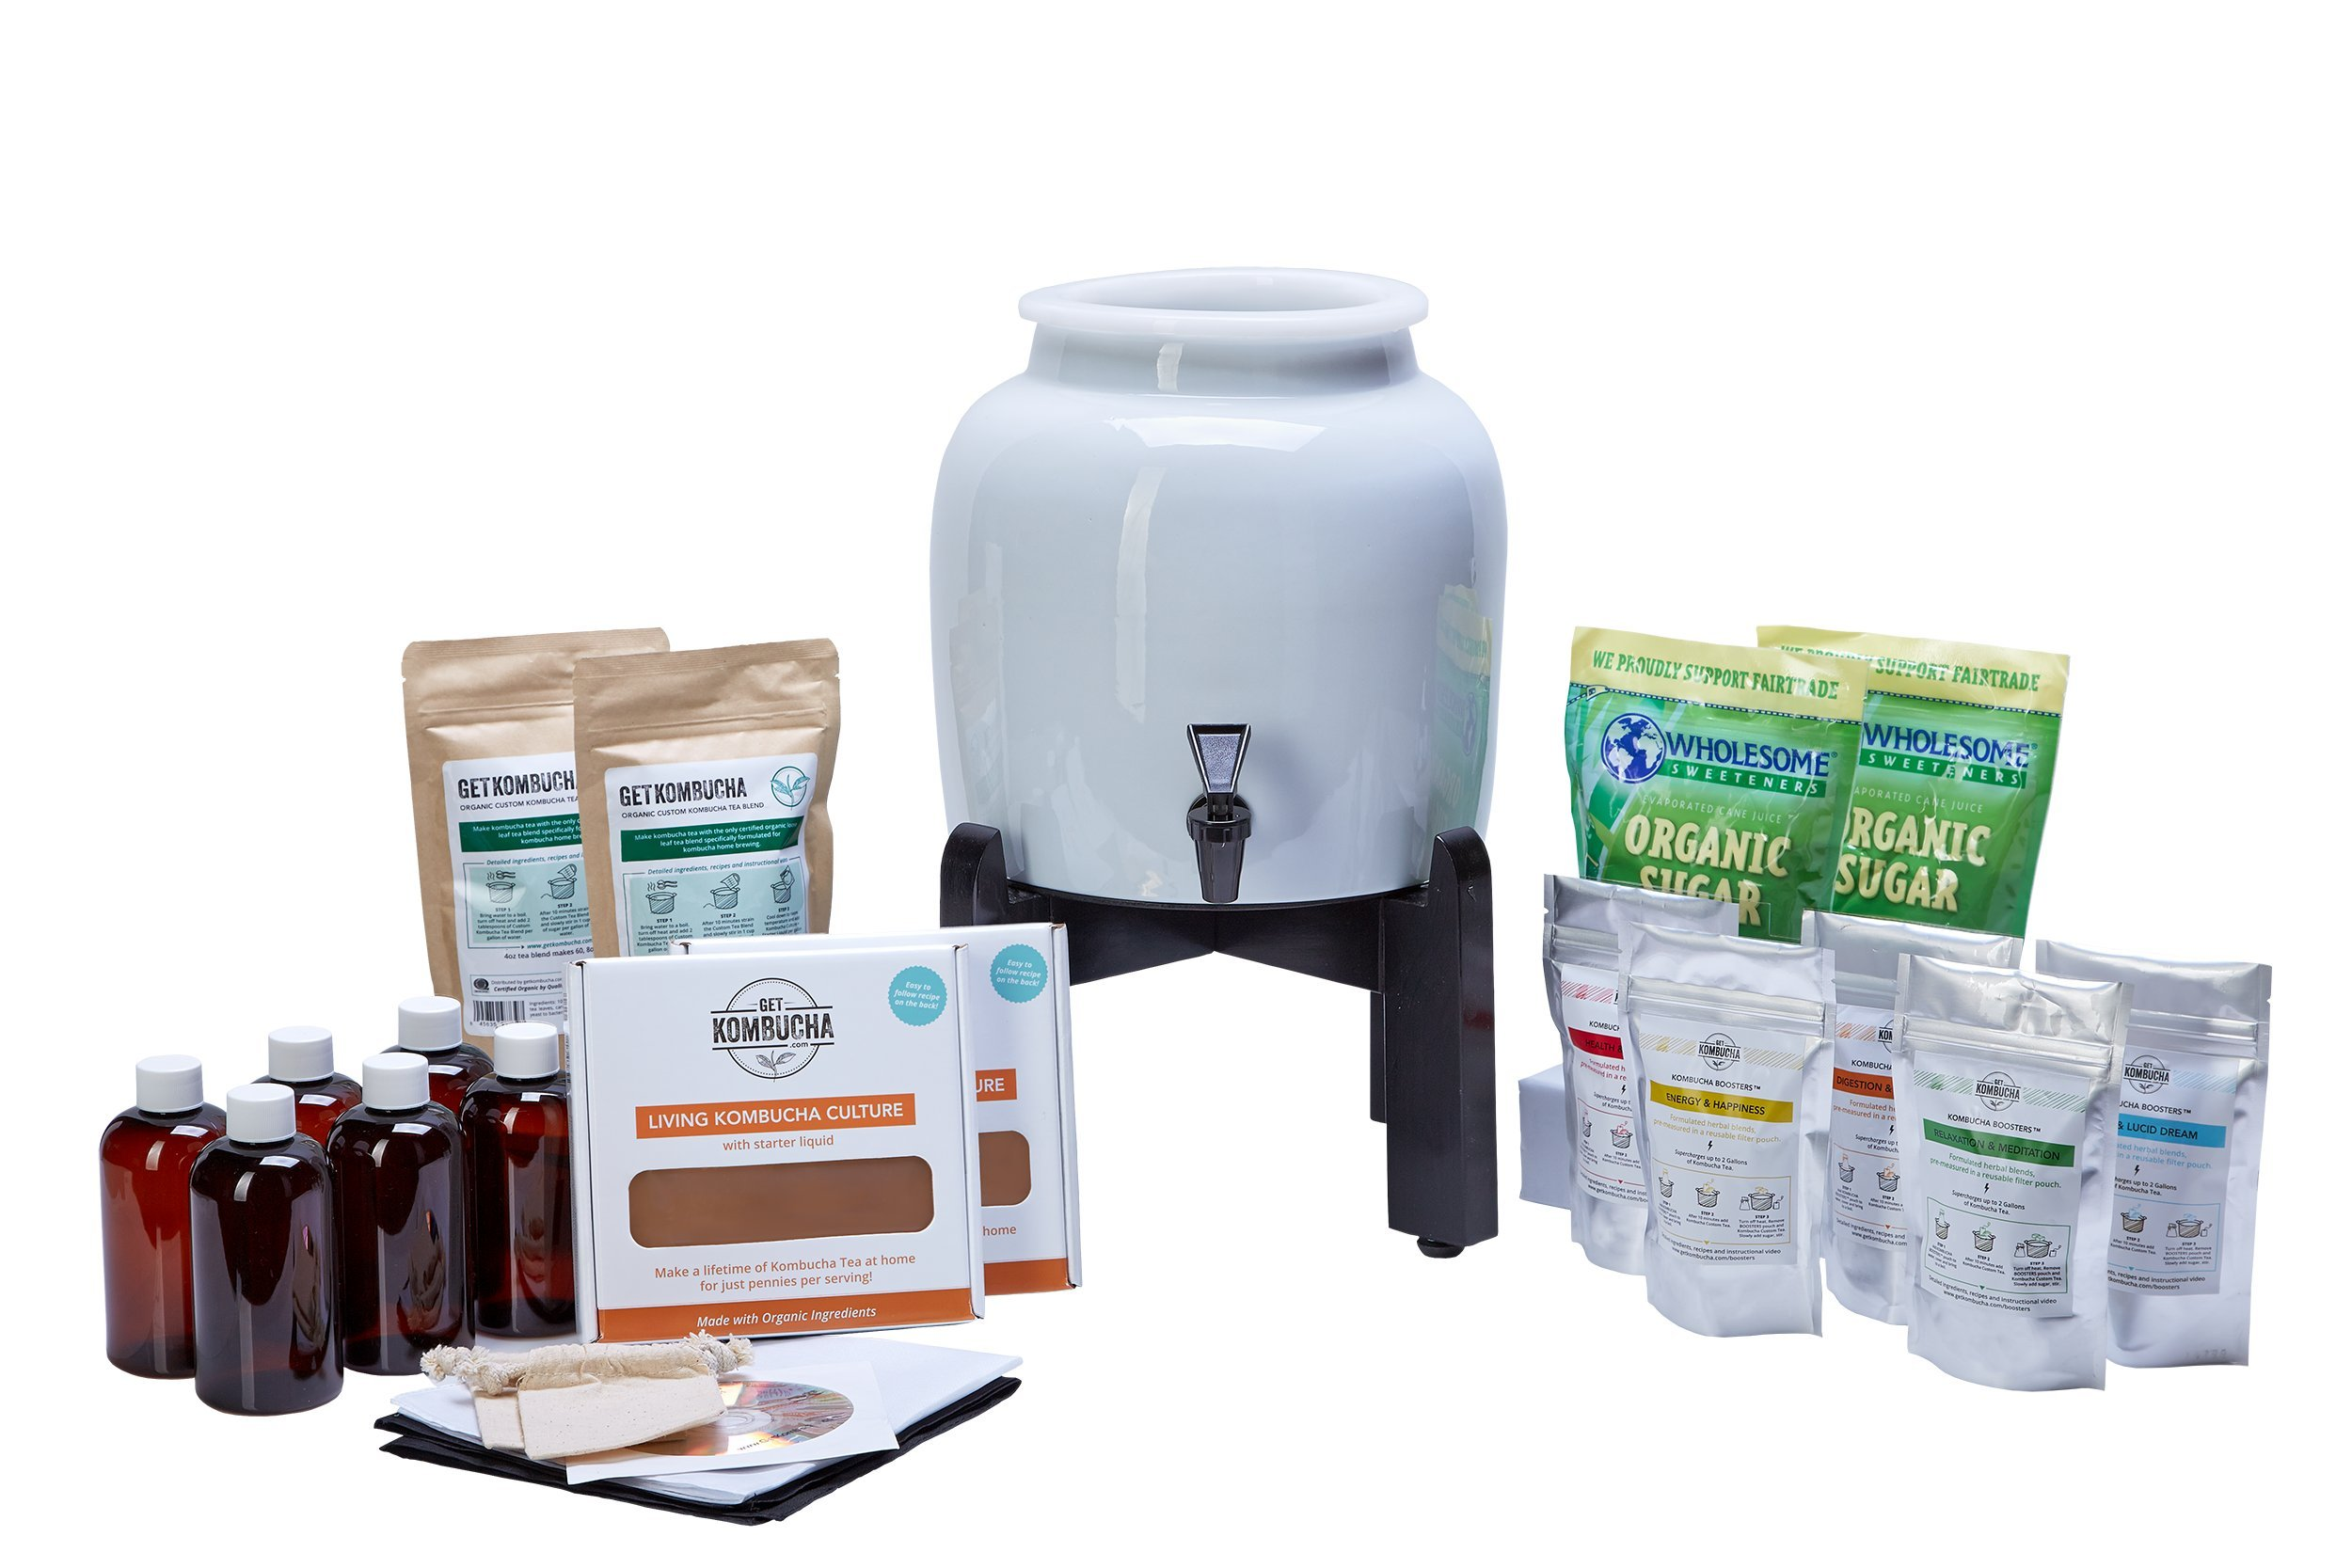 Make Kombucha Tea On Tap. Continuous Kombucha Home Brew Kit Makes 127 Bottles Of Great Tasting Kombucha Tea Right From Home Every 28 Days! Everything You Need To Get Brewing. 180 Day Guarantee.